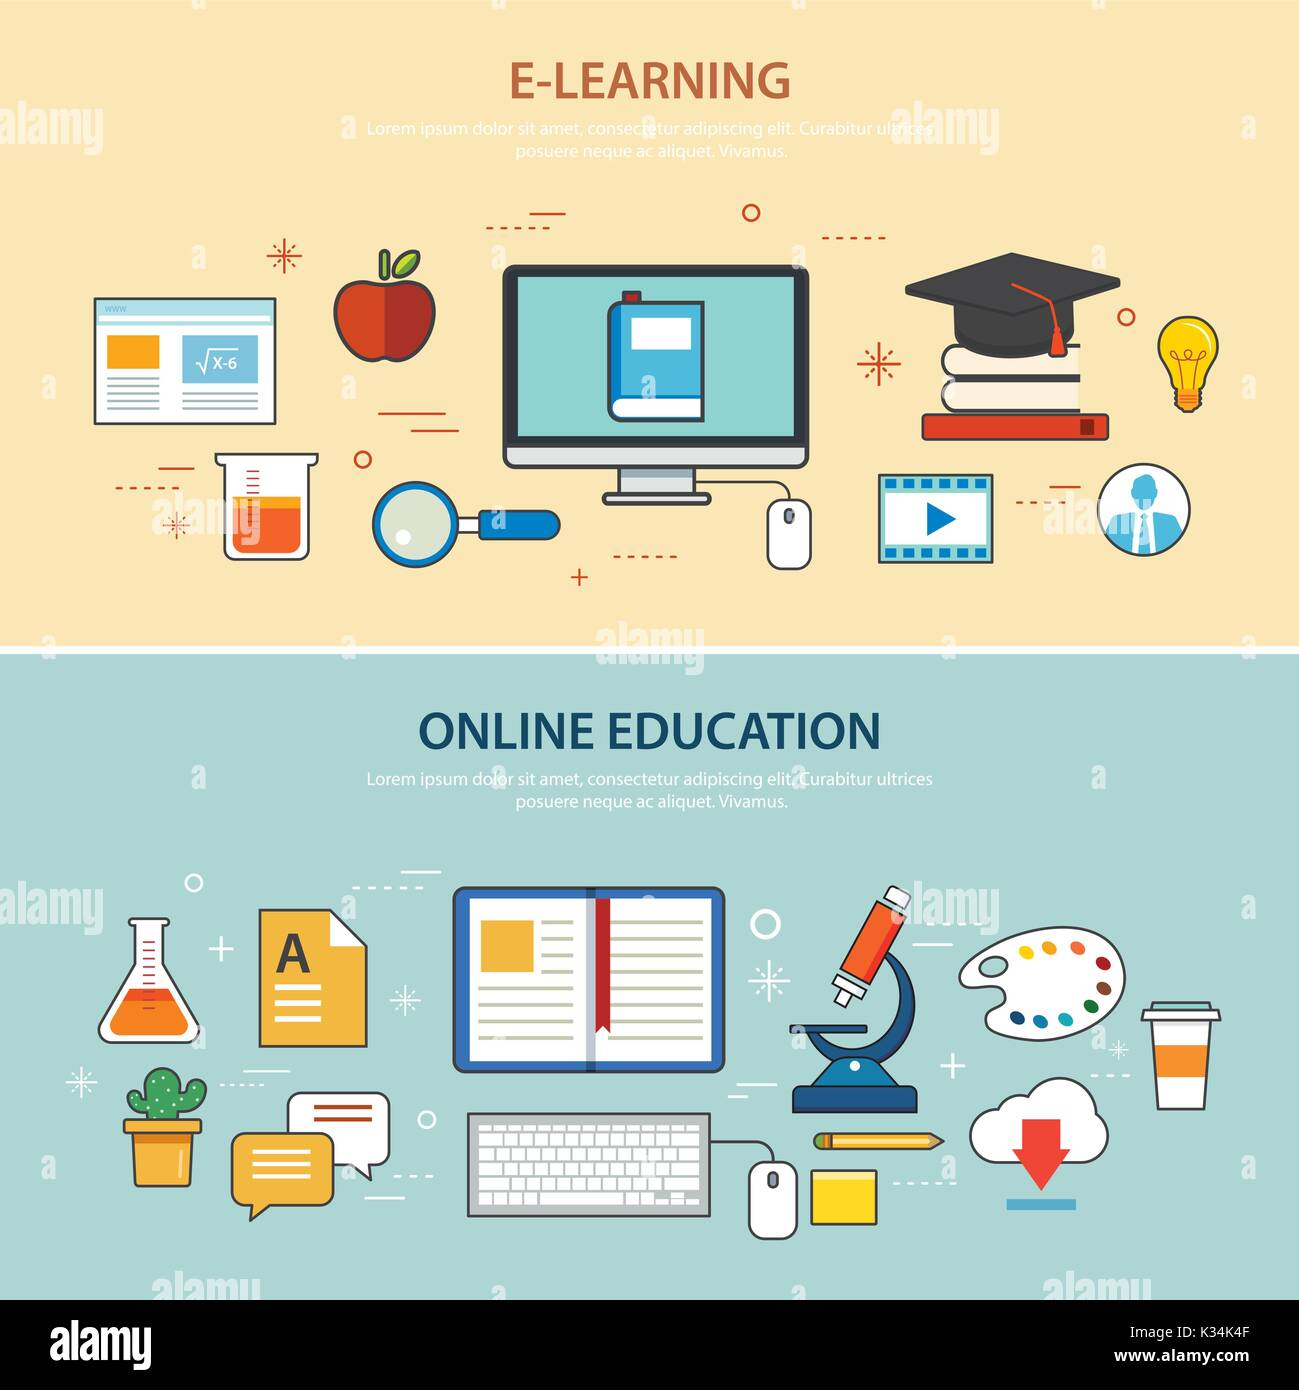 Online Education And E Learning Banner Flat Design Template Stock Vector Image Art Alamy